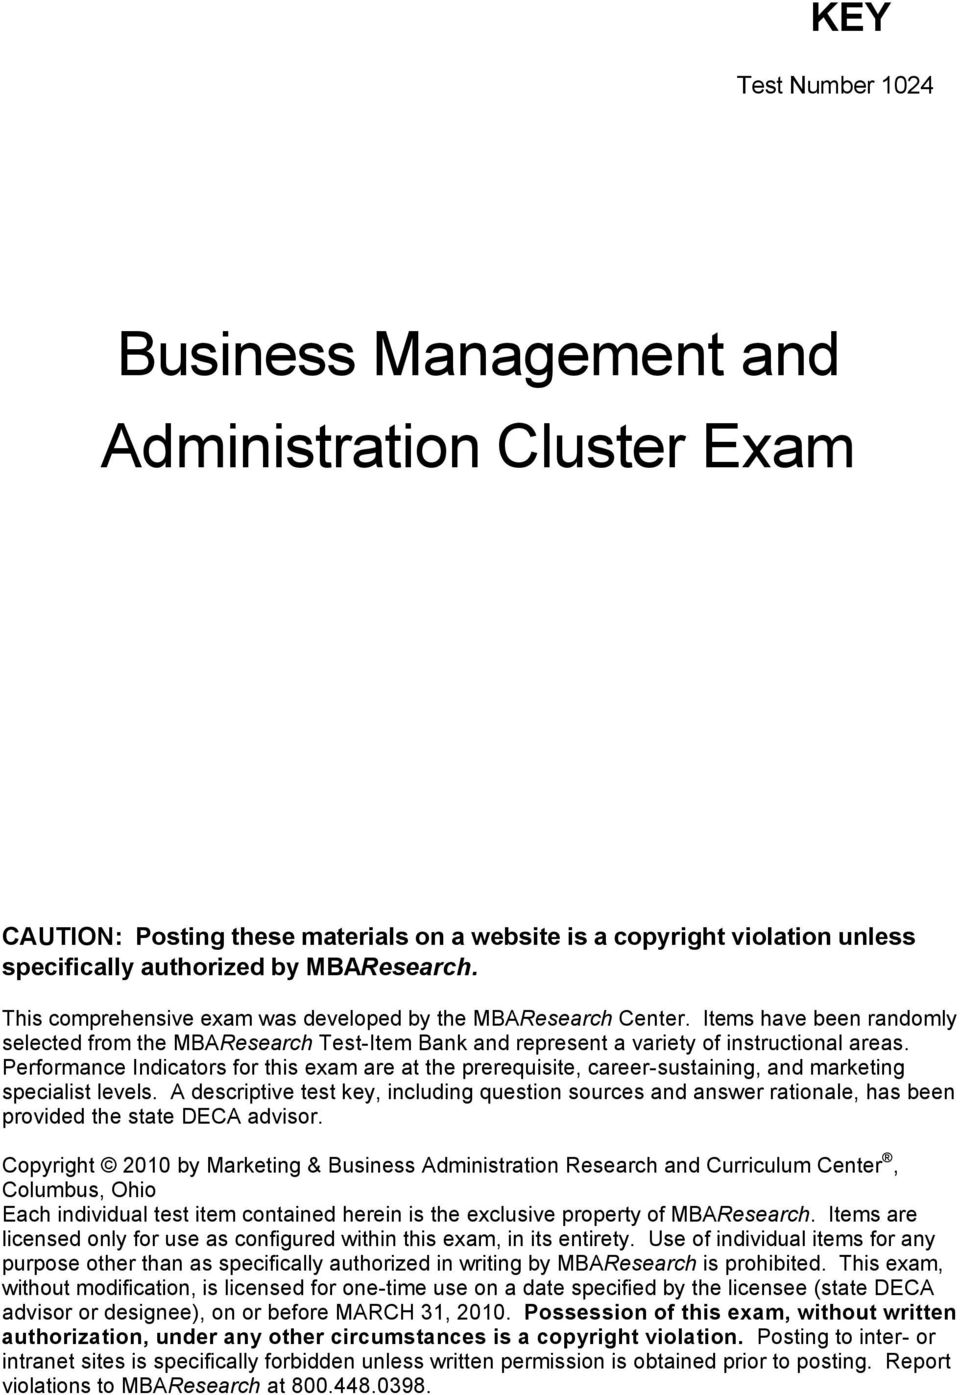 Business Management and Administration Cluster Exam - PDF